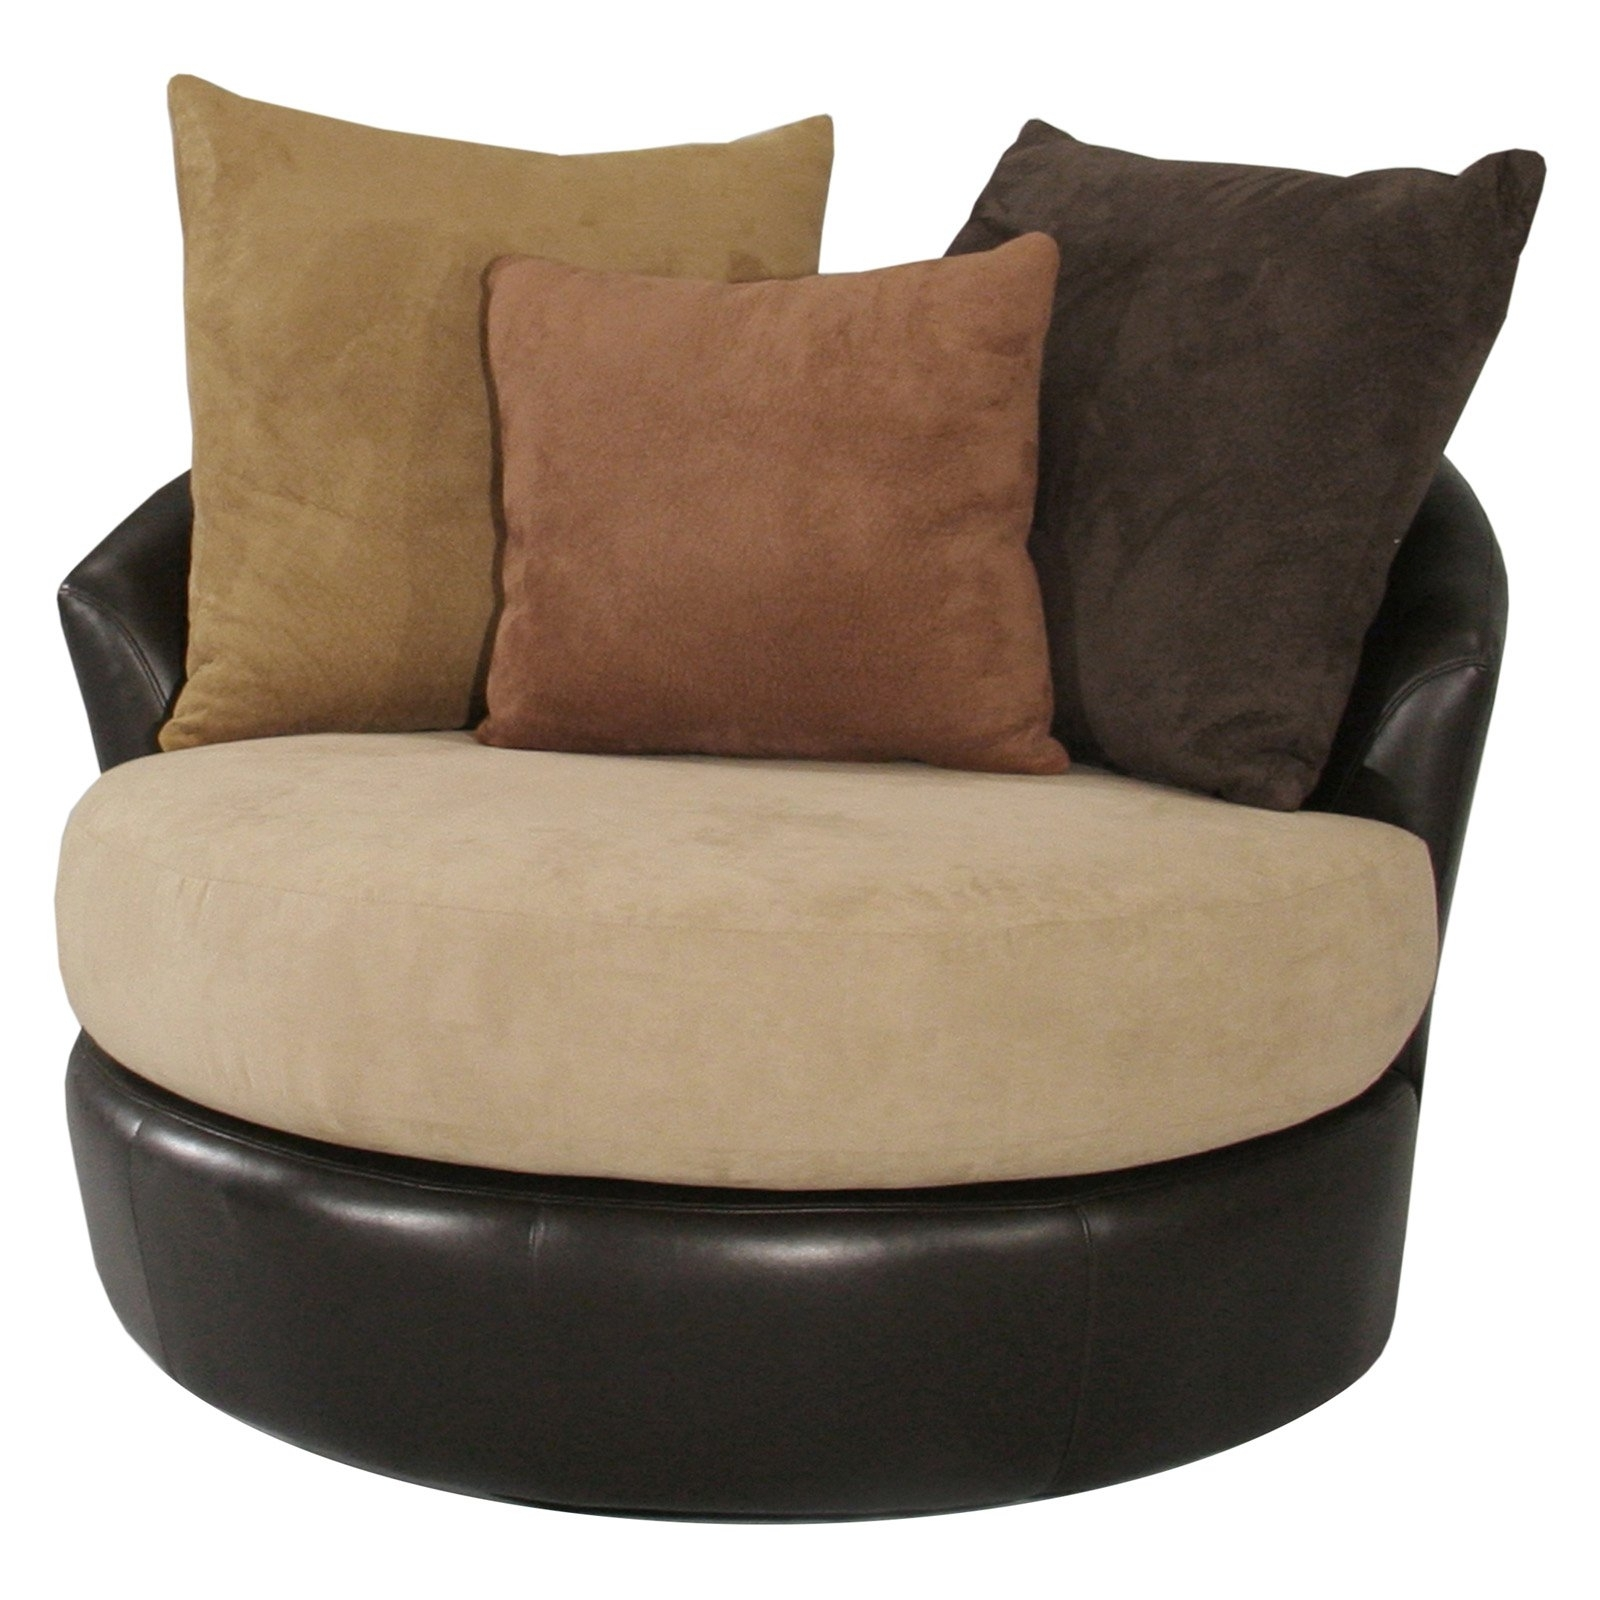 Widely Used Round Chaises Intended For Outstanding Round Chaise Lounge Designs – Decofurnish (View 14 of 15)